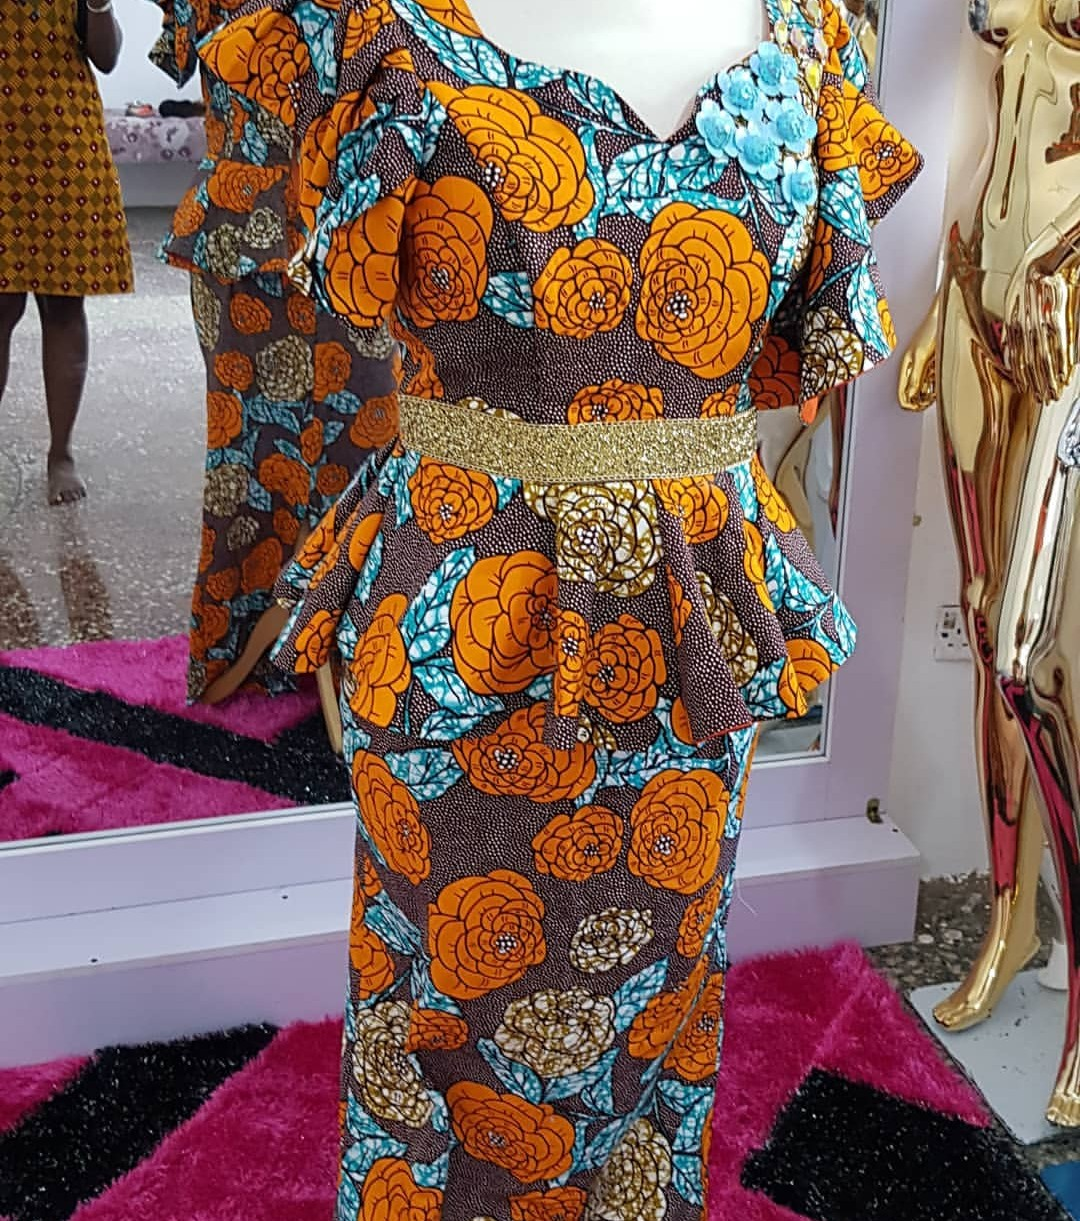 2020 NIGERIAN WEDDING STYLES TO BE THE STAR IN THE OCCASION! 3